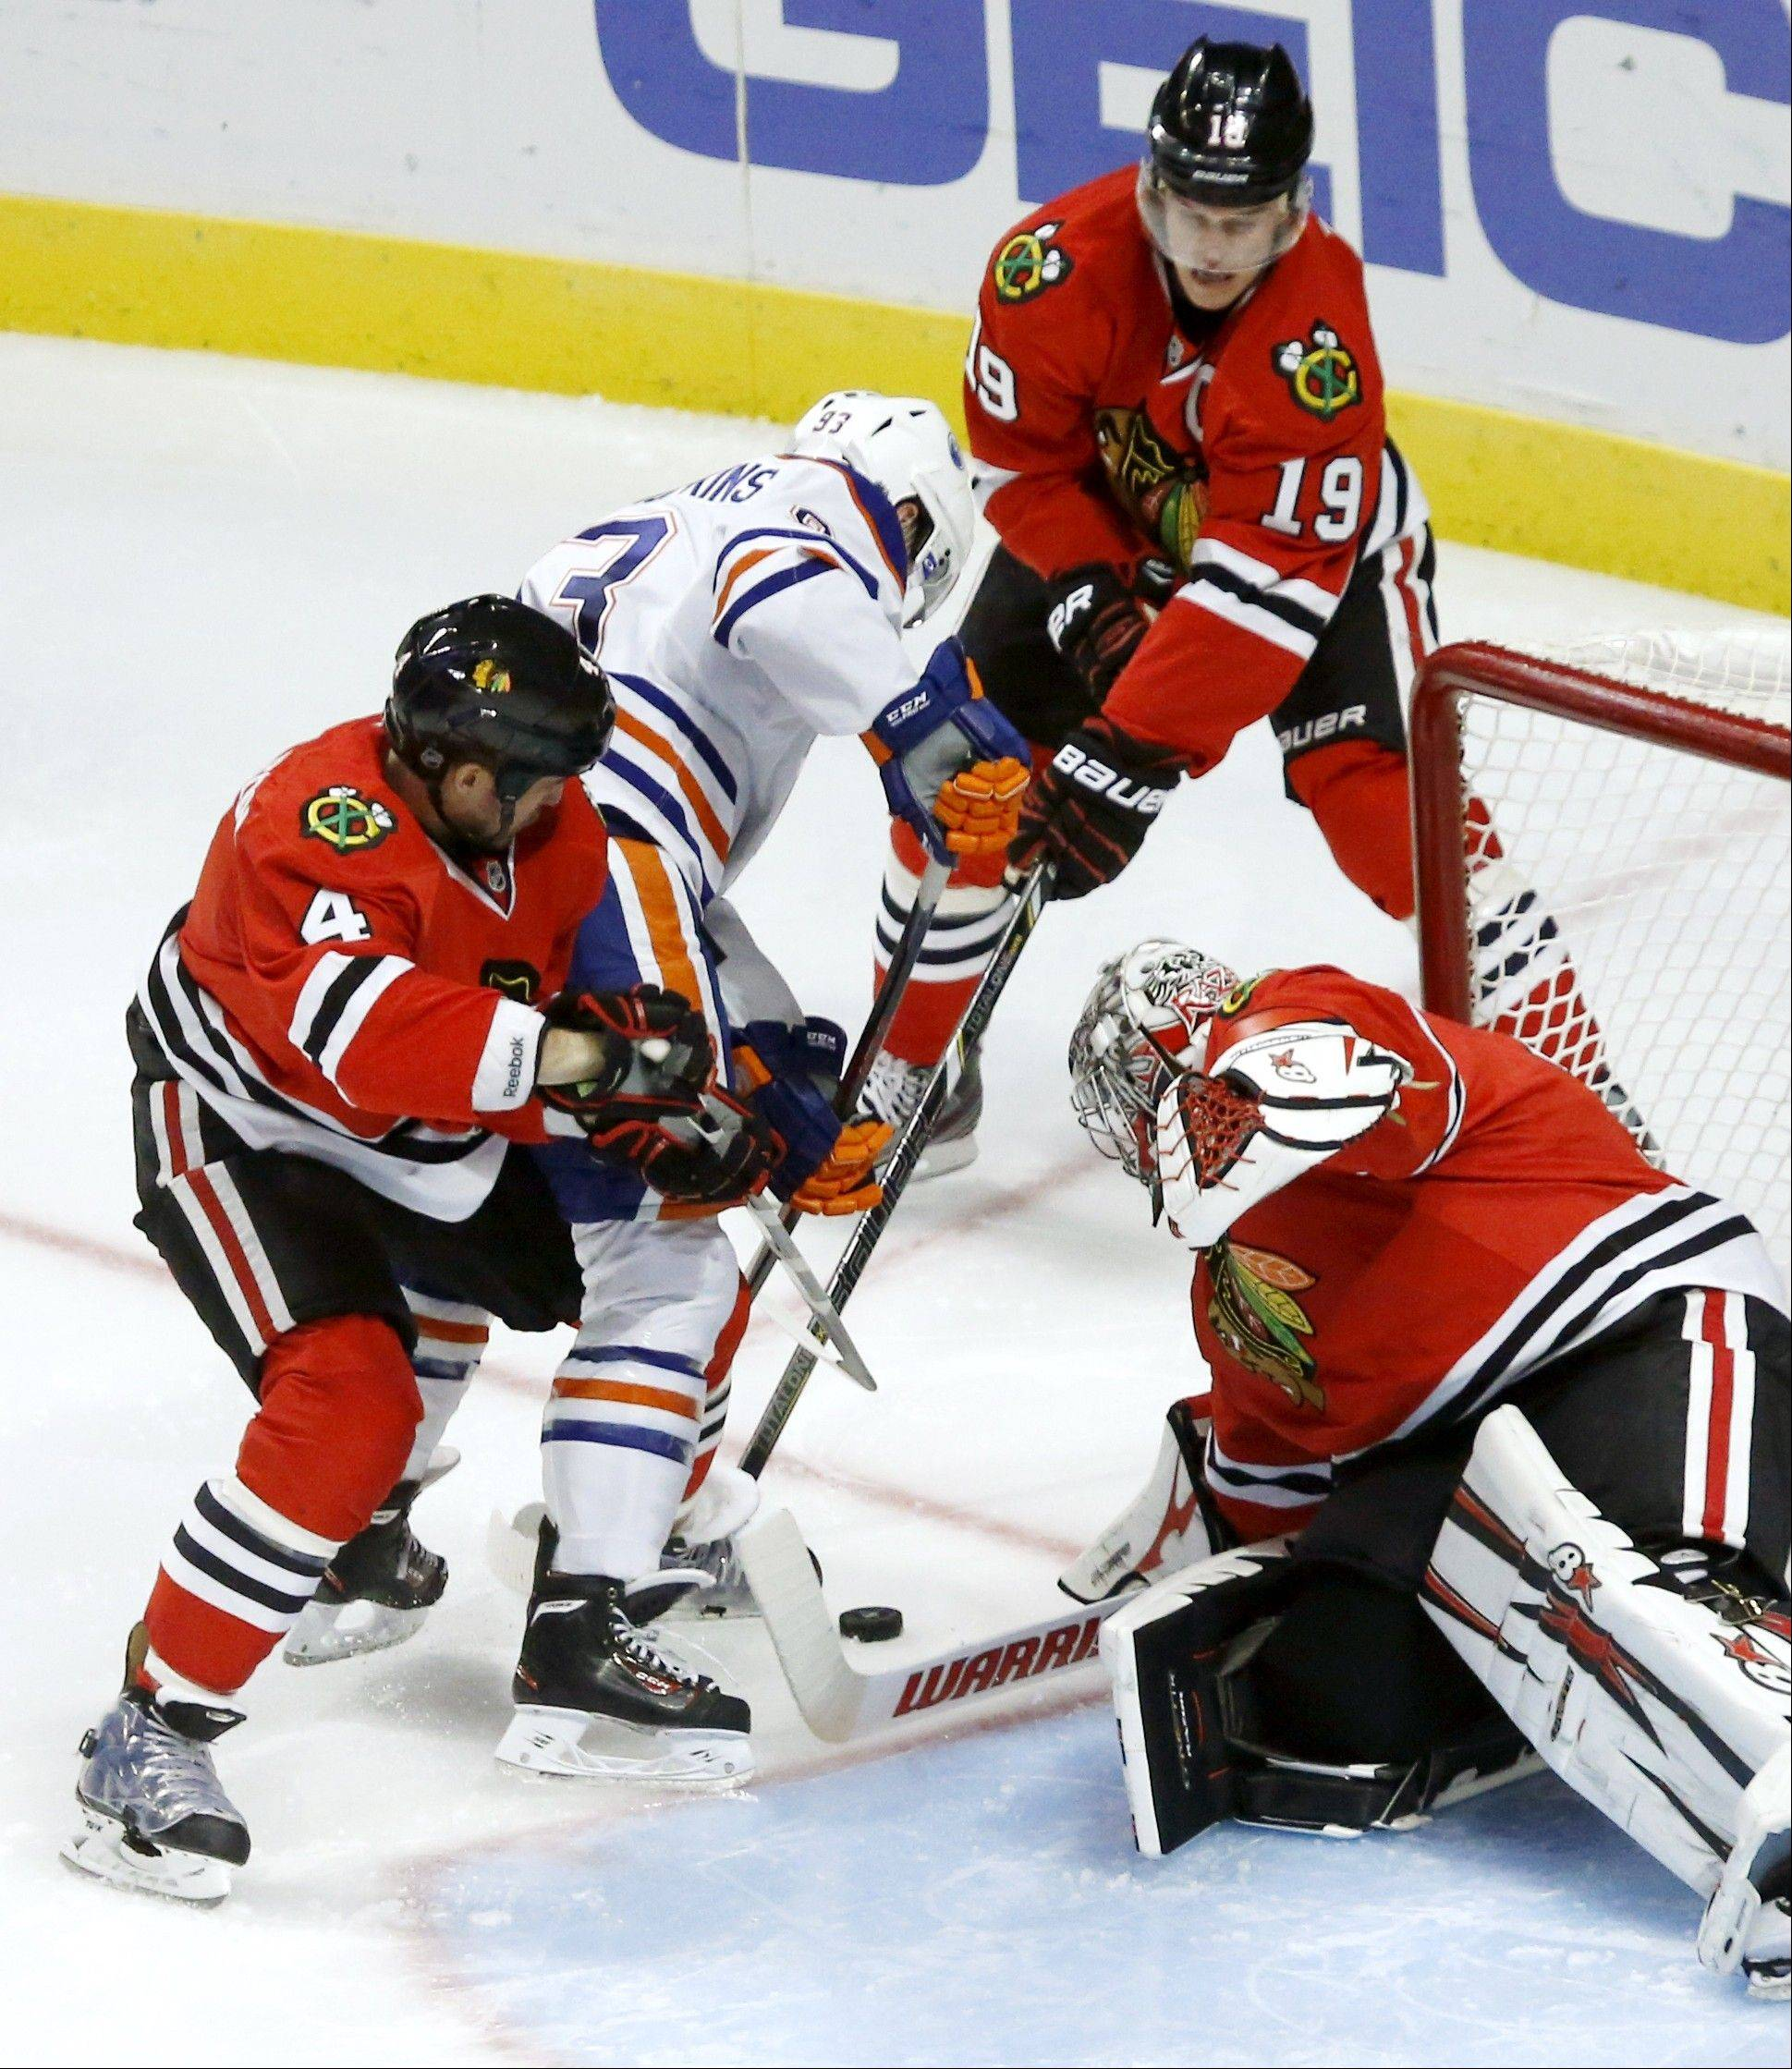 The Blackhawks' Niklas Hjalmarsson (4) and Jonathan Toews (19) keep Oilers center Ryan Nugent-Hopkins from getting a shot on goalie Ray Emery during the third period Monday night at the United Center. The Blackhawks won 3-2 in overtime.